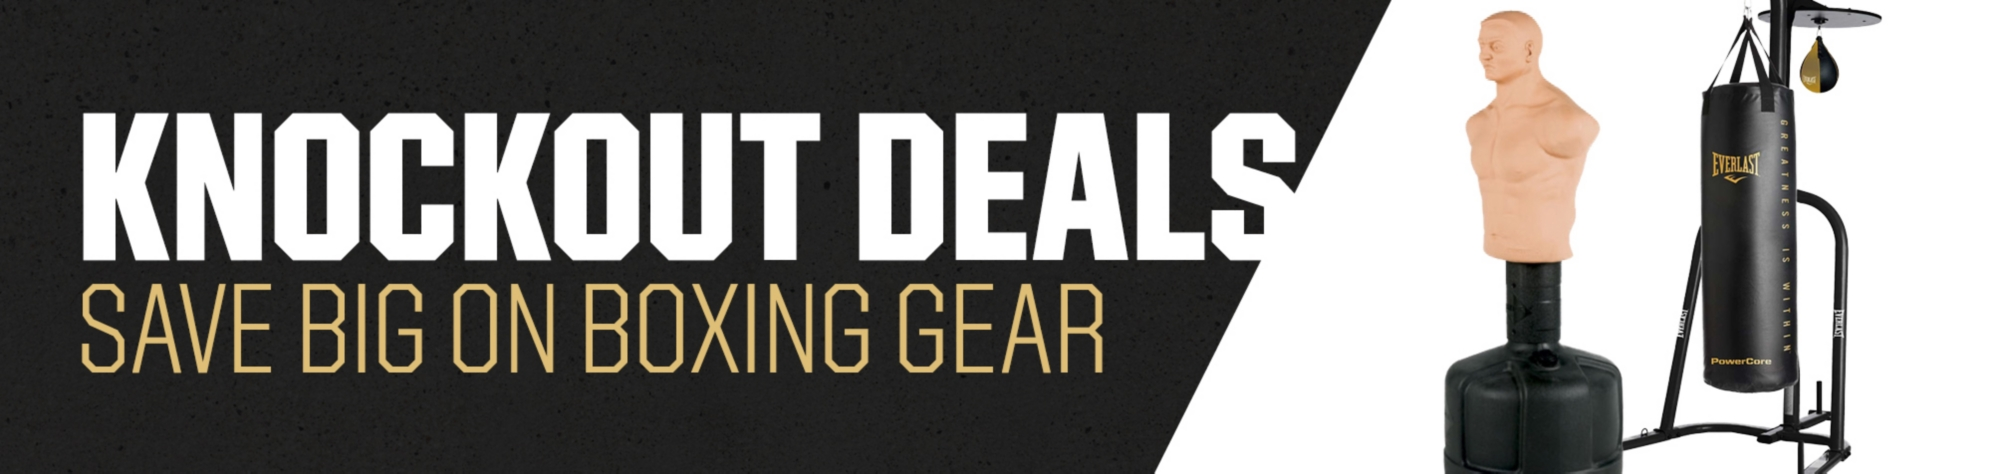 Knockout Deals - Save Big on Boxing Gear